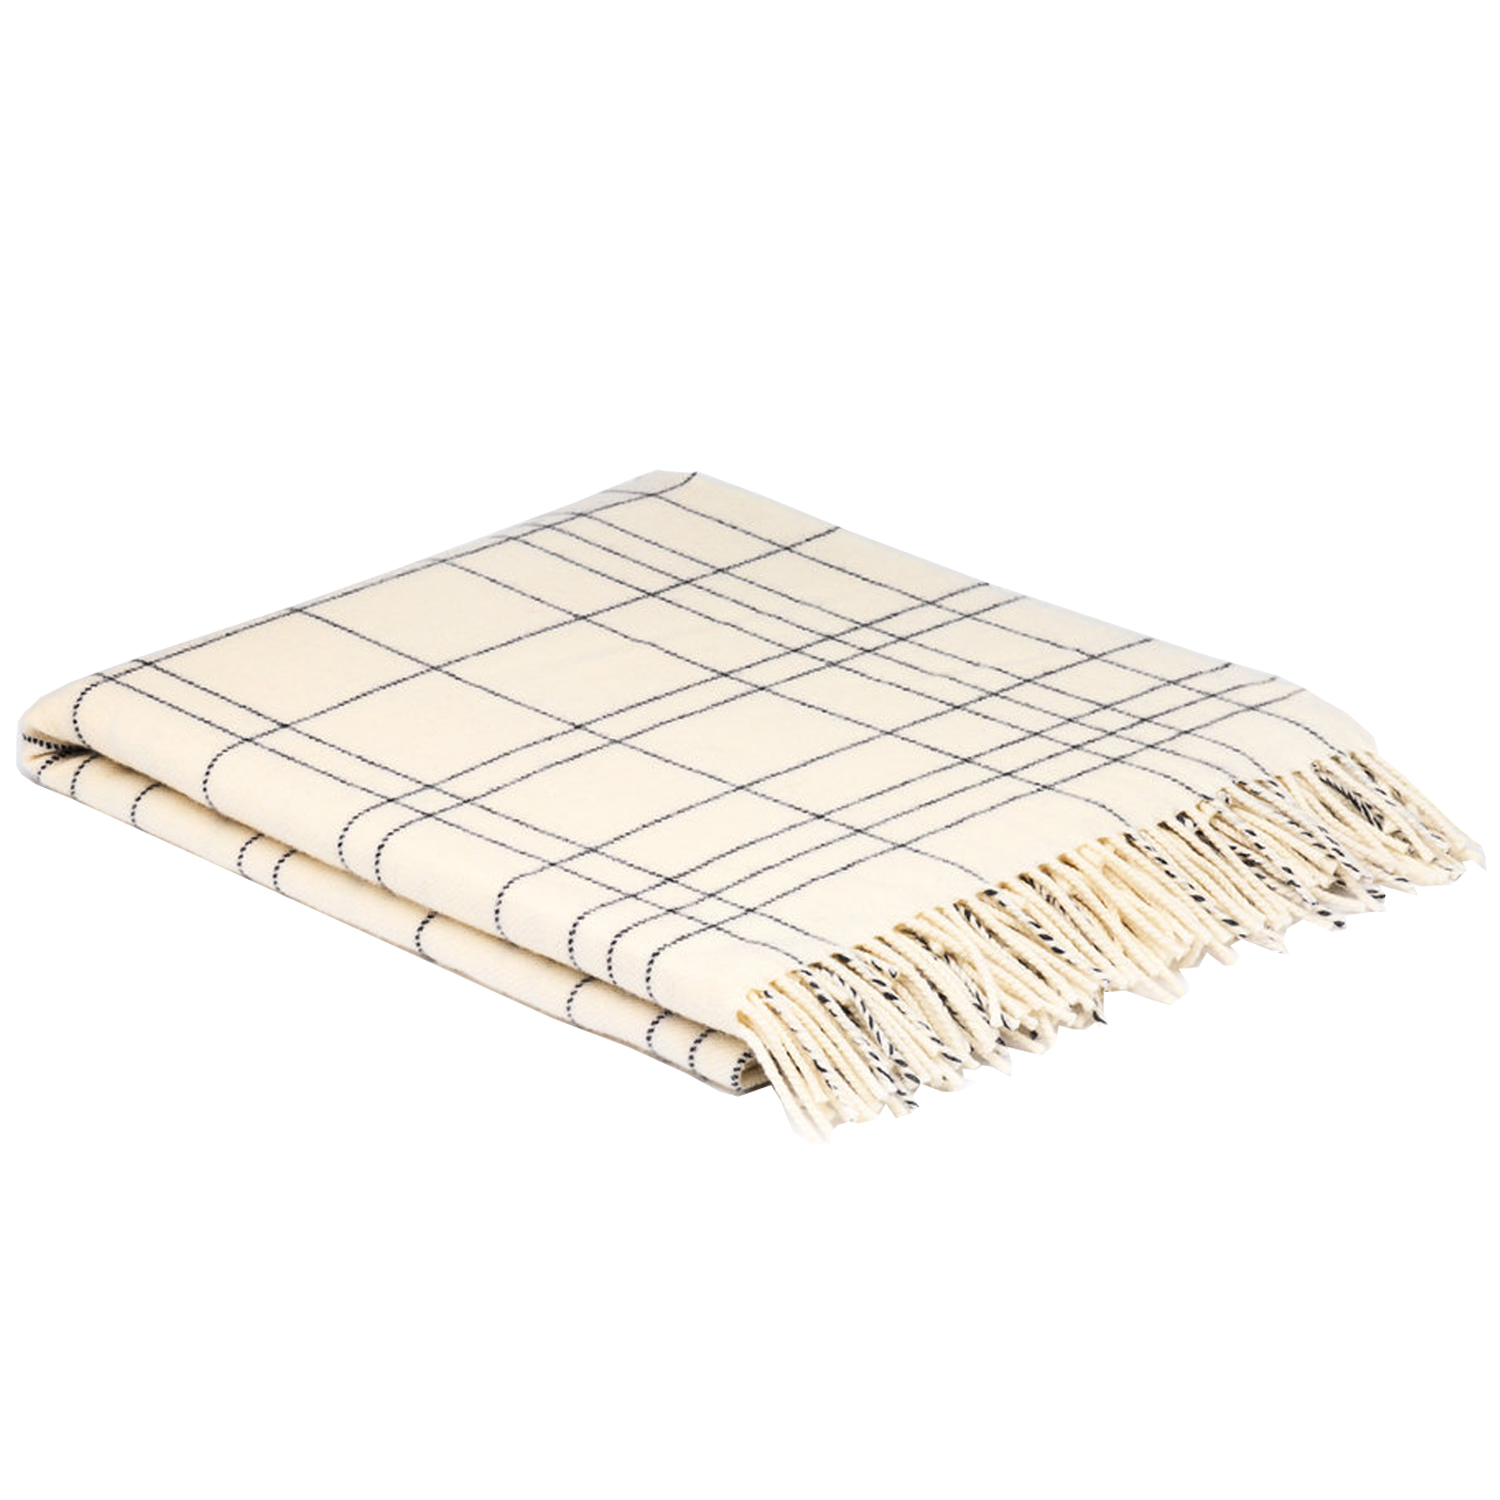 00327 McNutt of Donegal Cream Check Supersoft lambswool throw